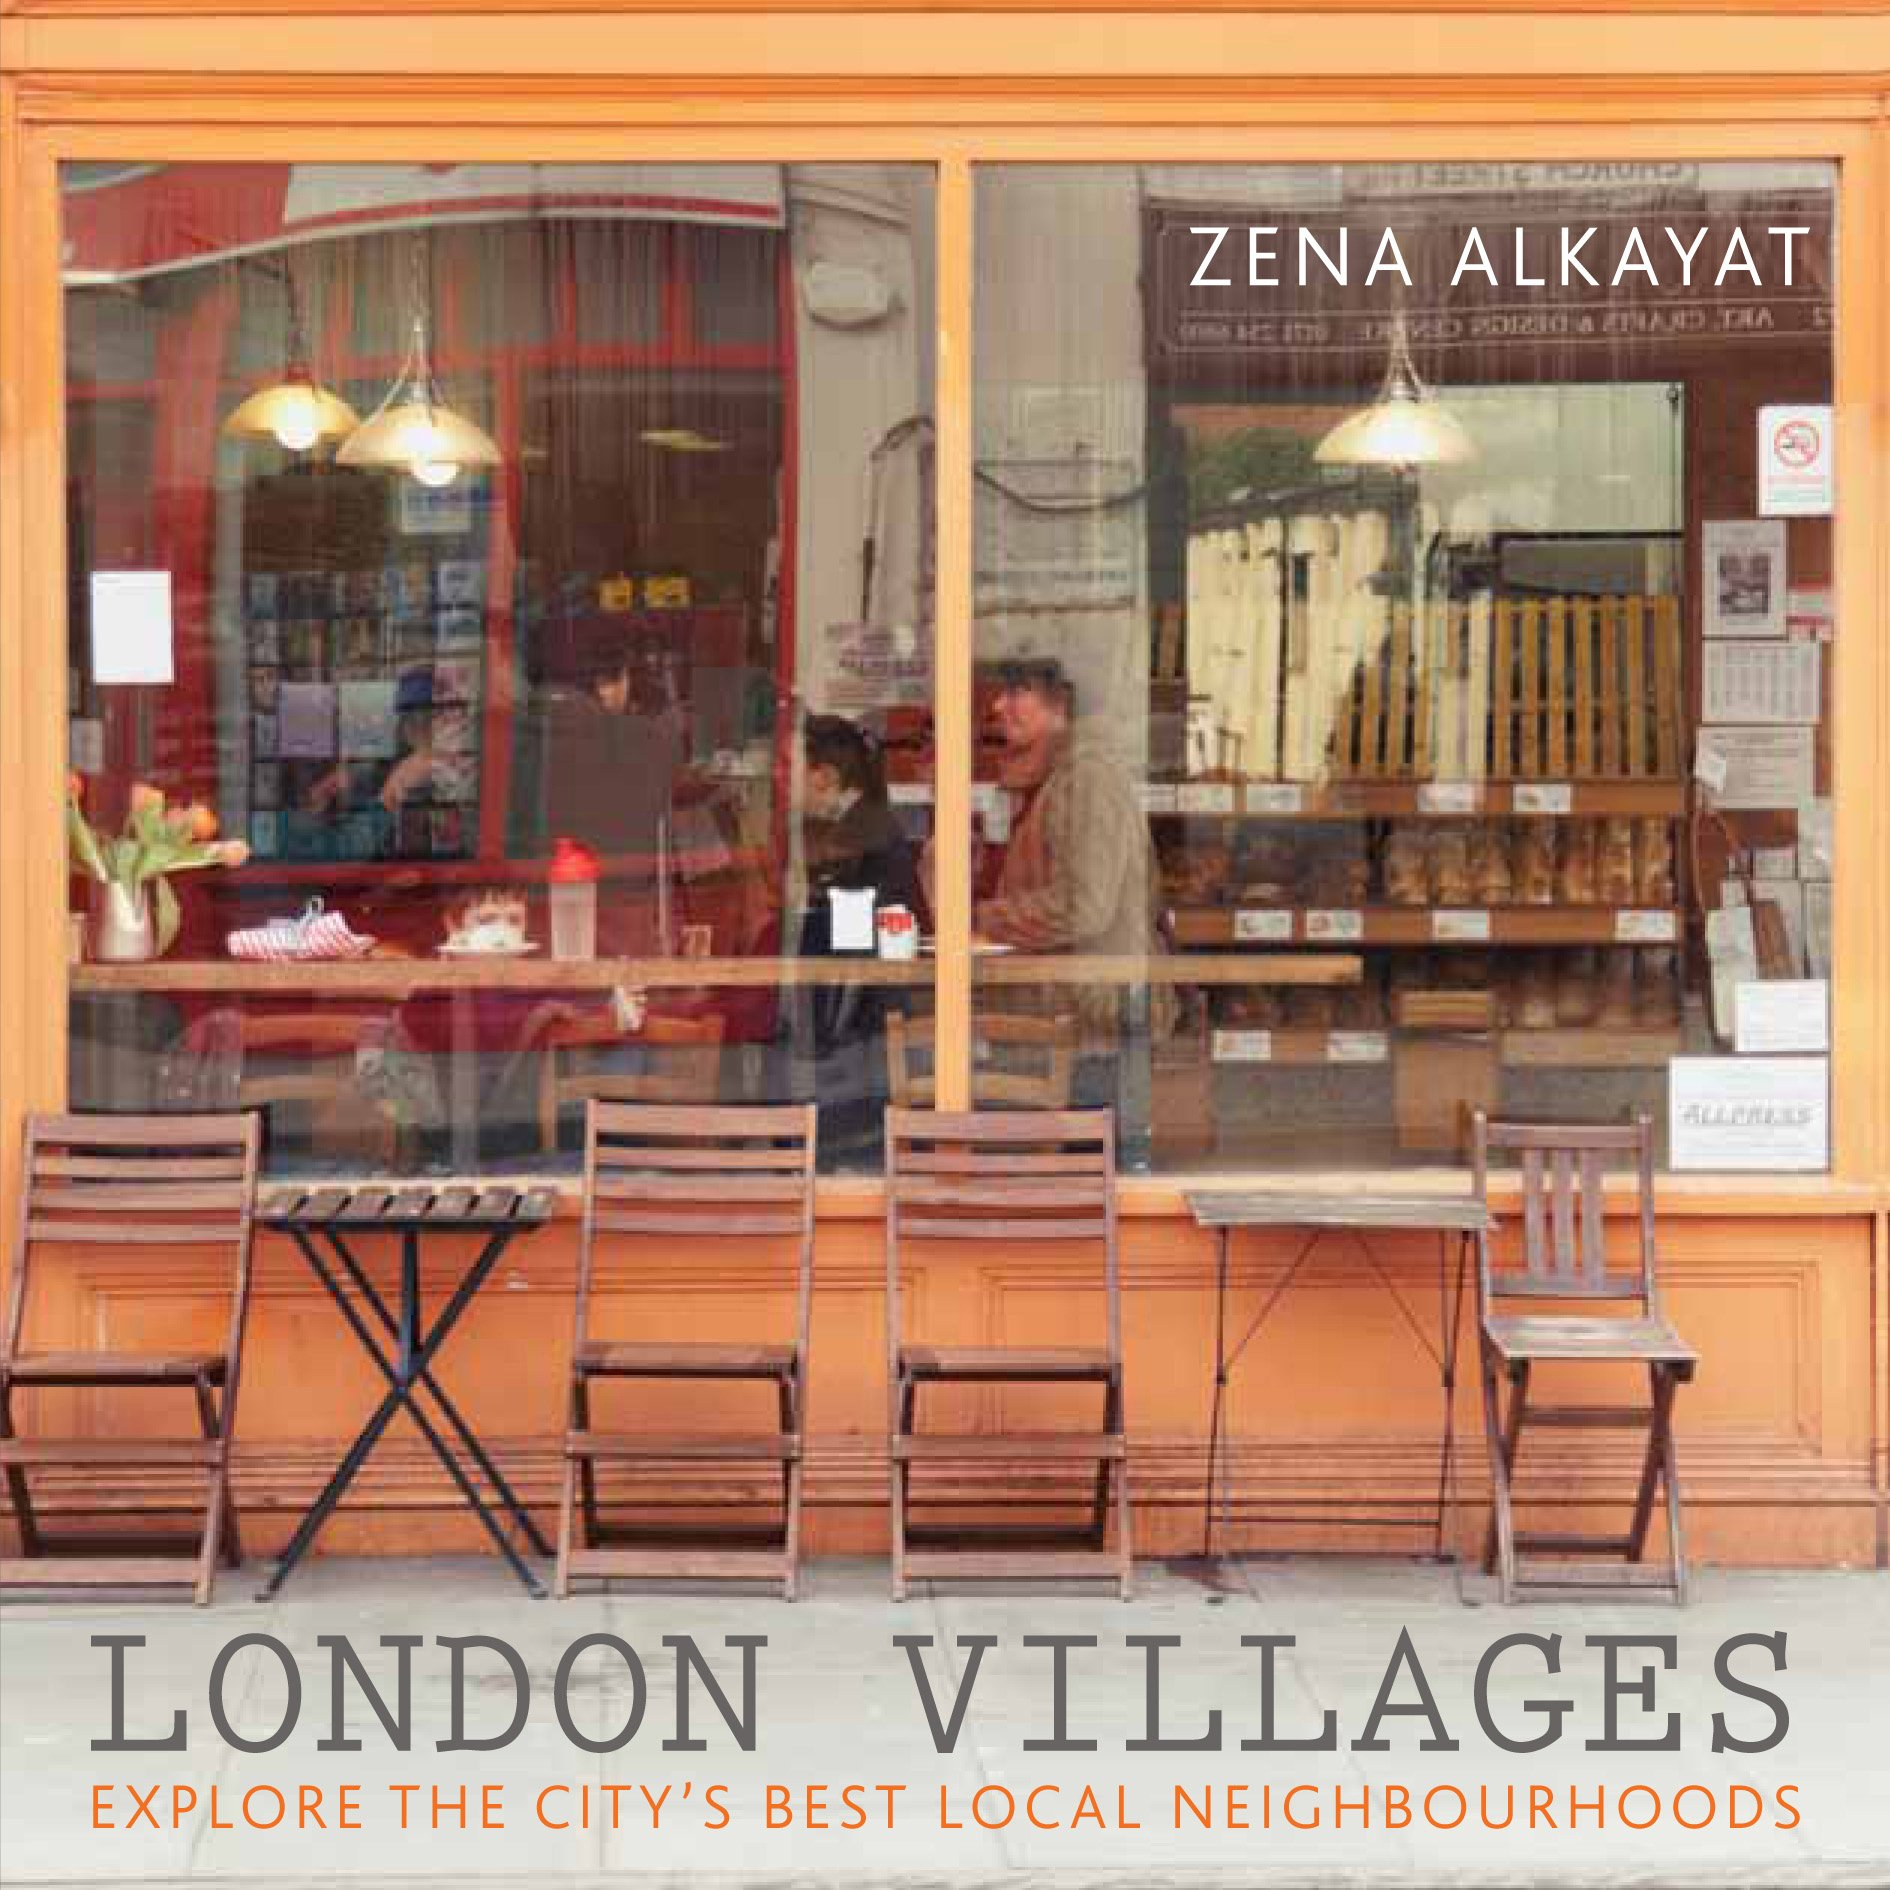 London Villages: Explore the City's Best Local Neighbourhoods (London Guides)